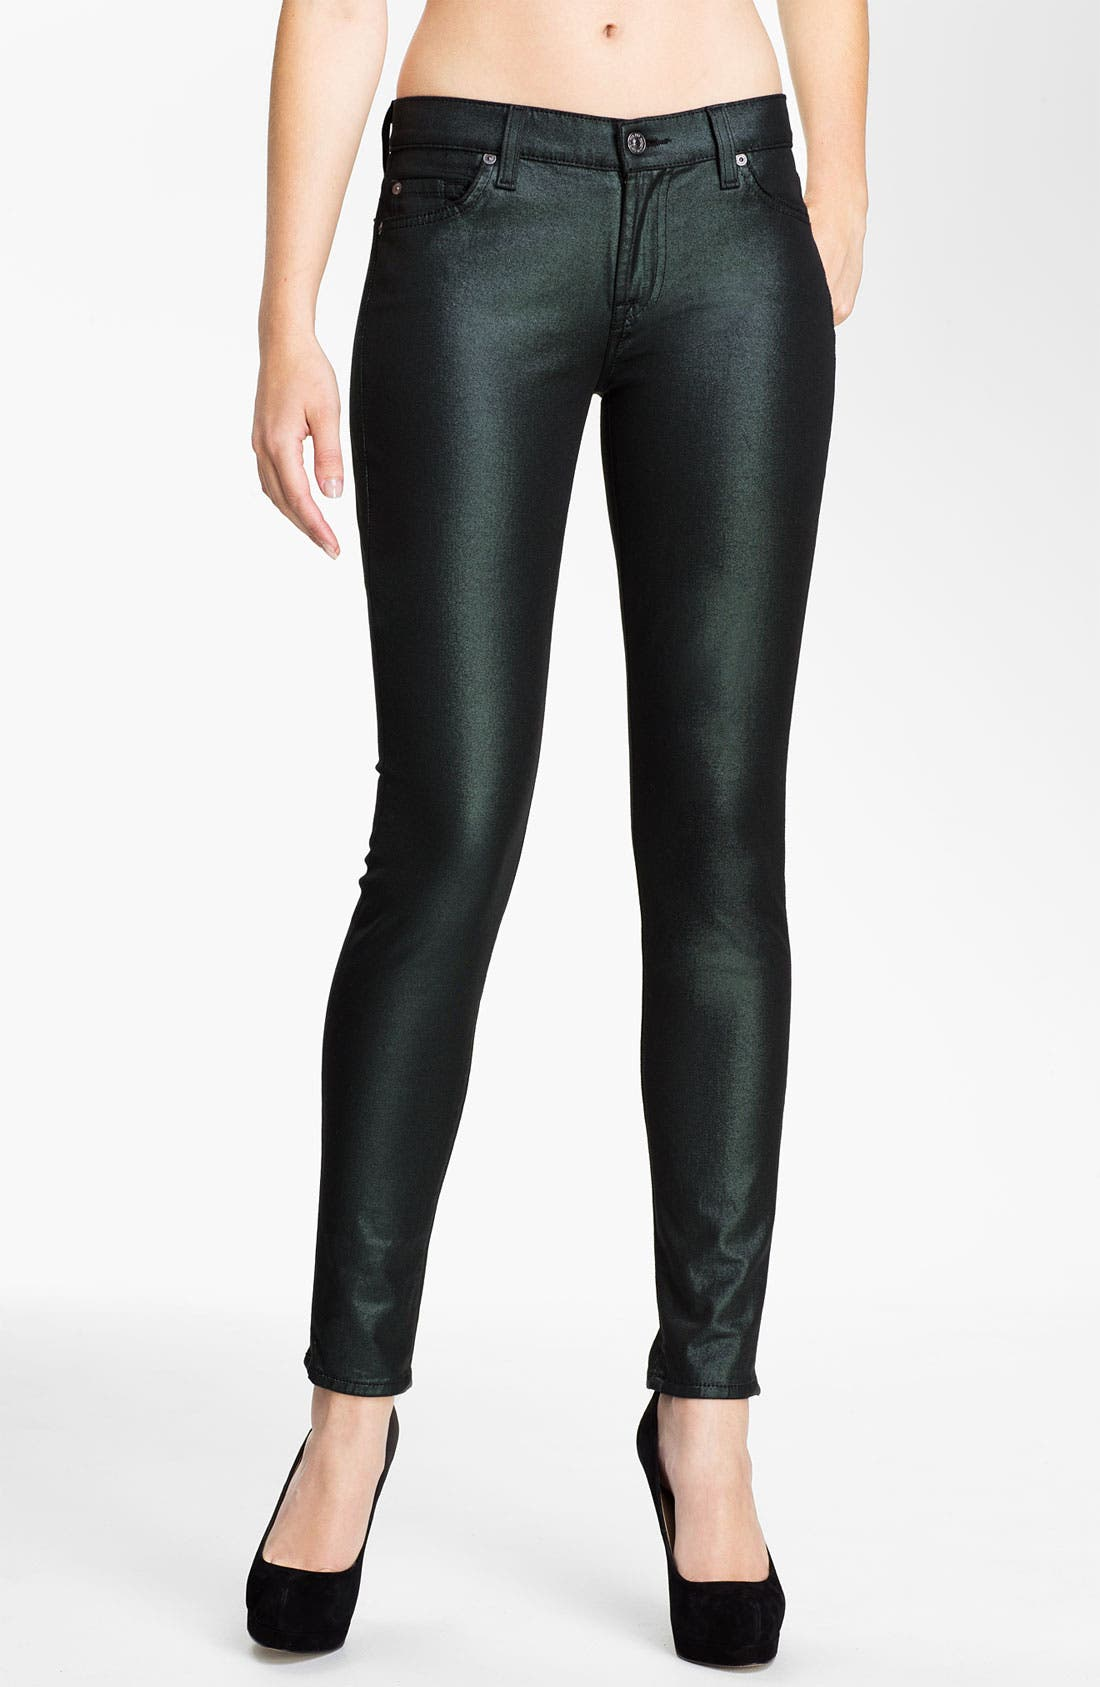 Alternate Image 1 Selected - 7 For All Mankind® 'The Skinny' Coated Jeans (Metallic Emerald)